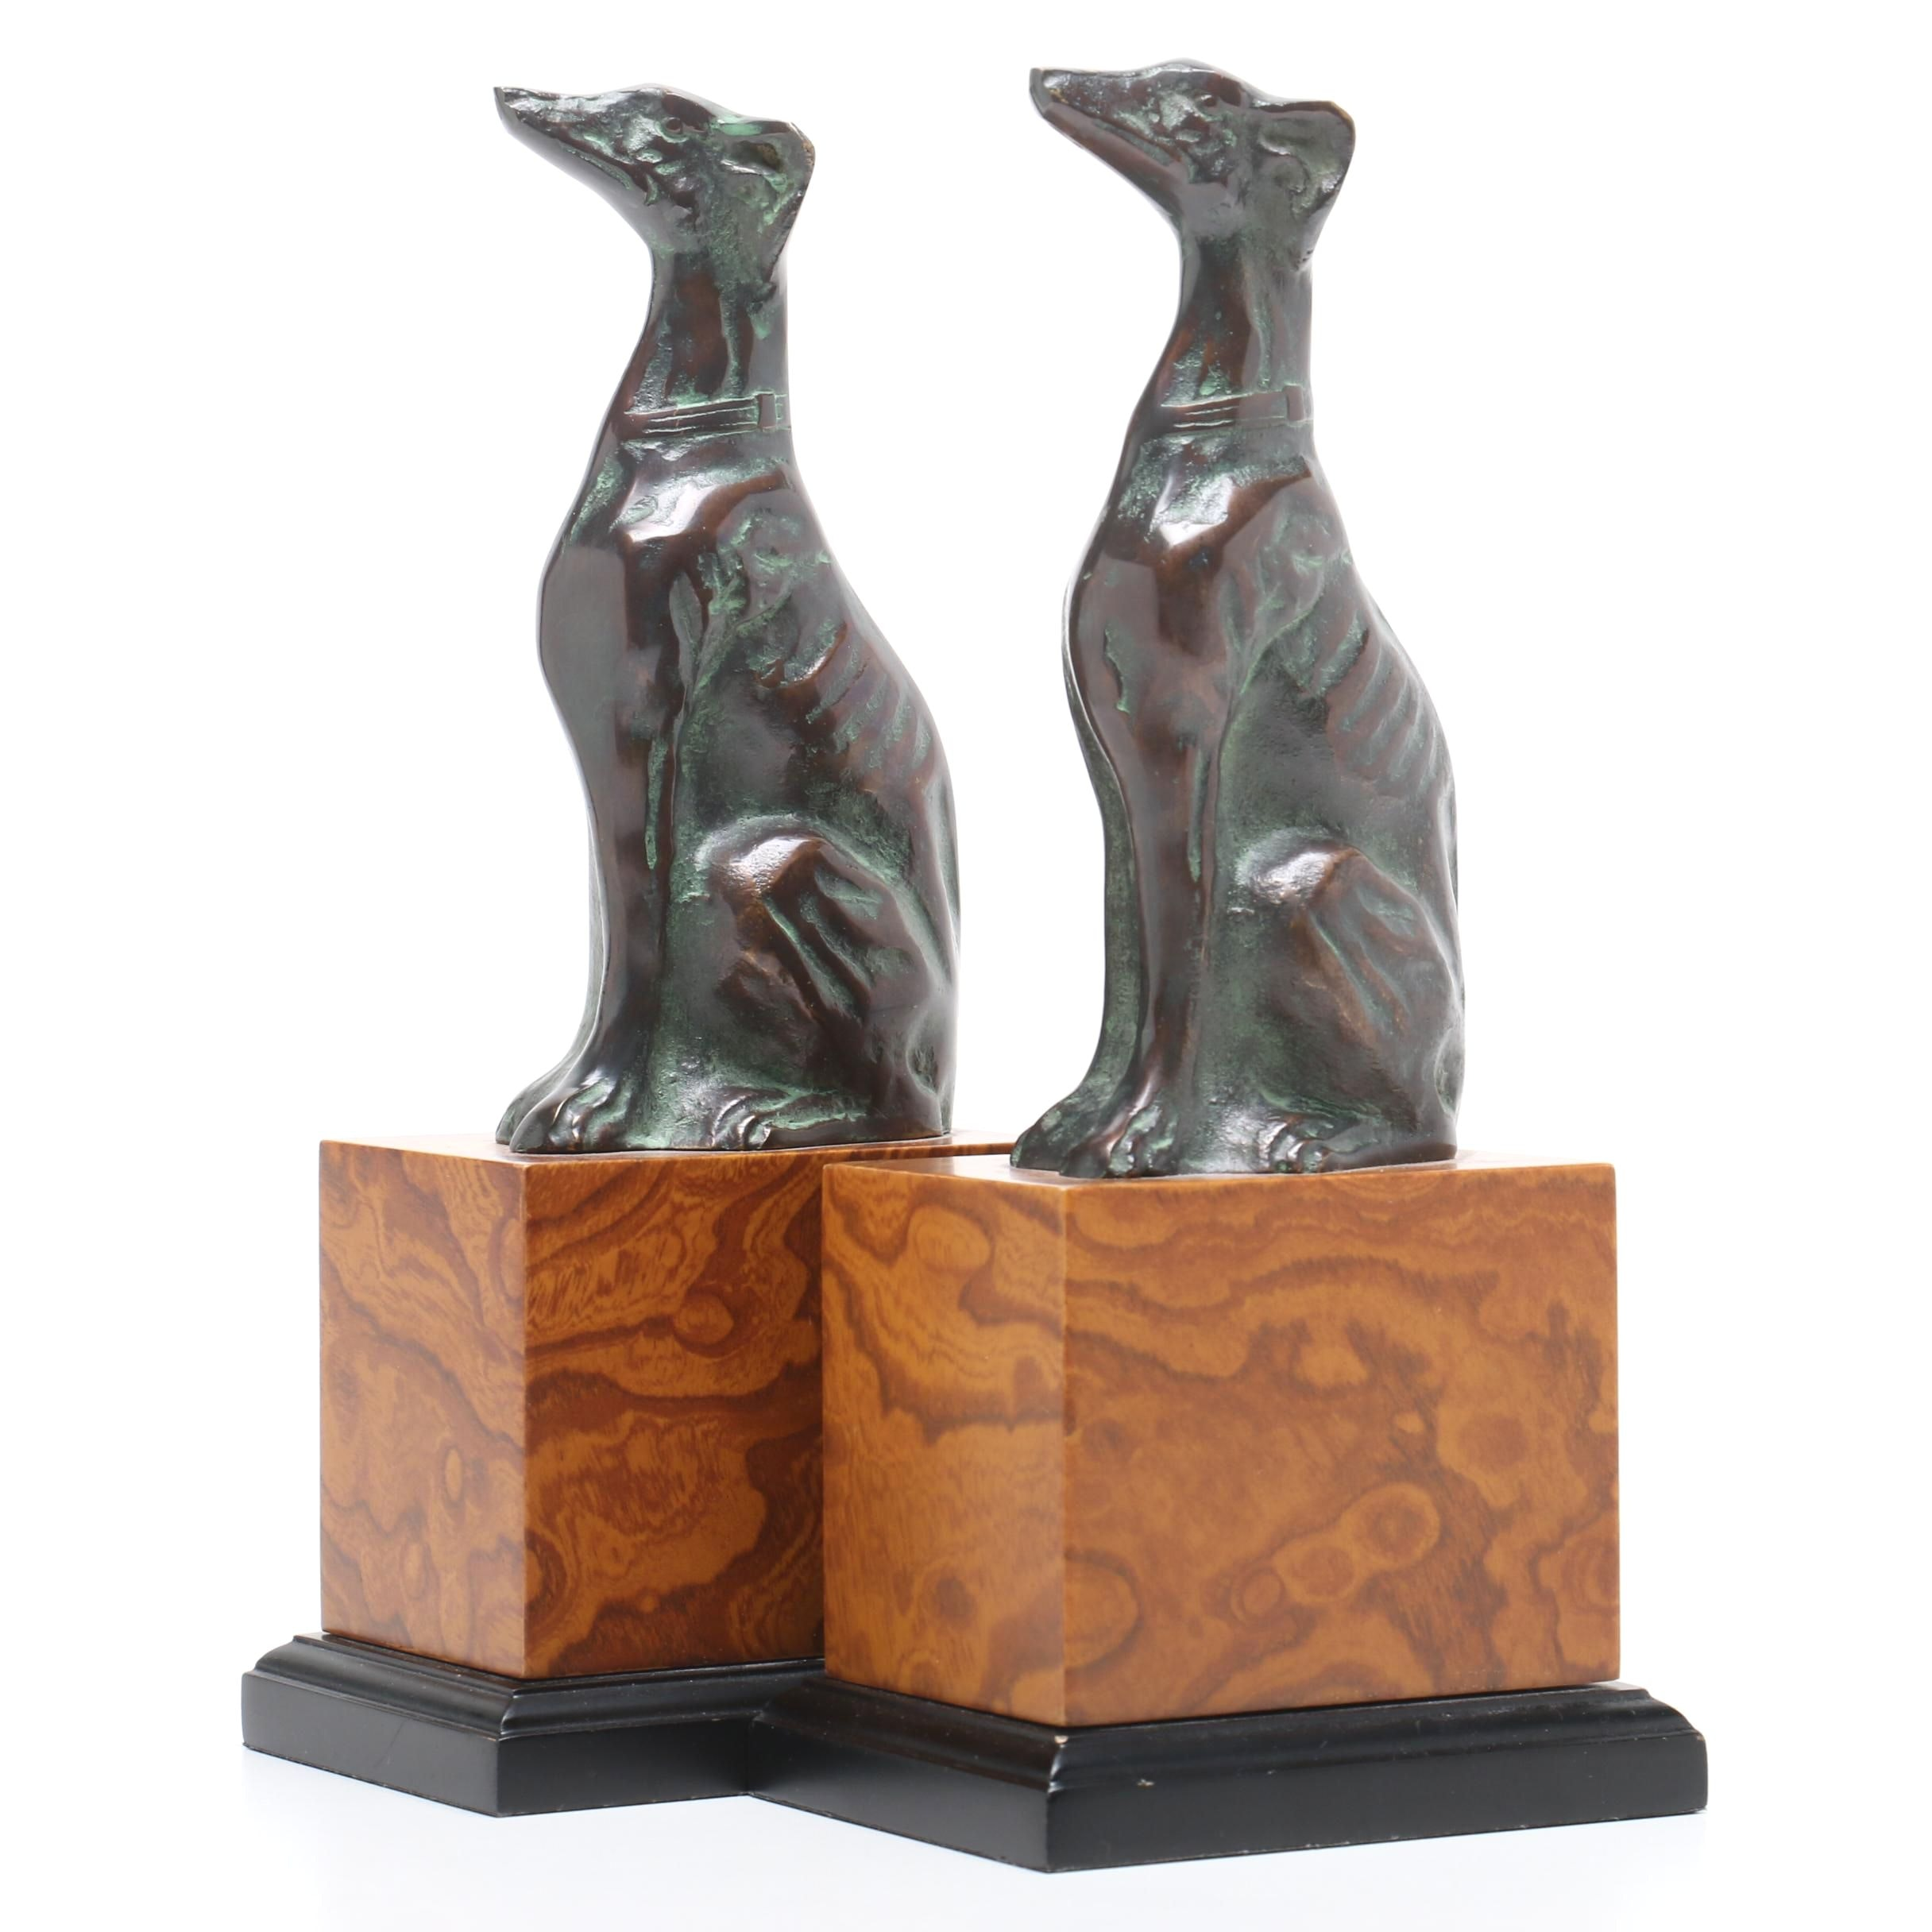 Pair of Greyhound Figural Bookends